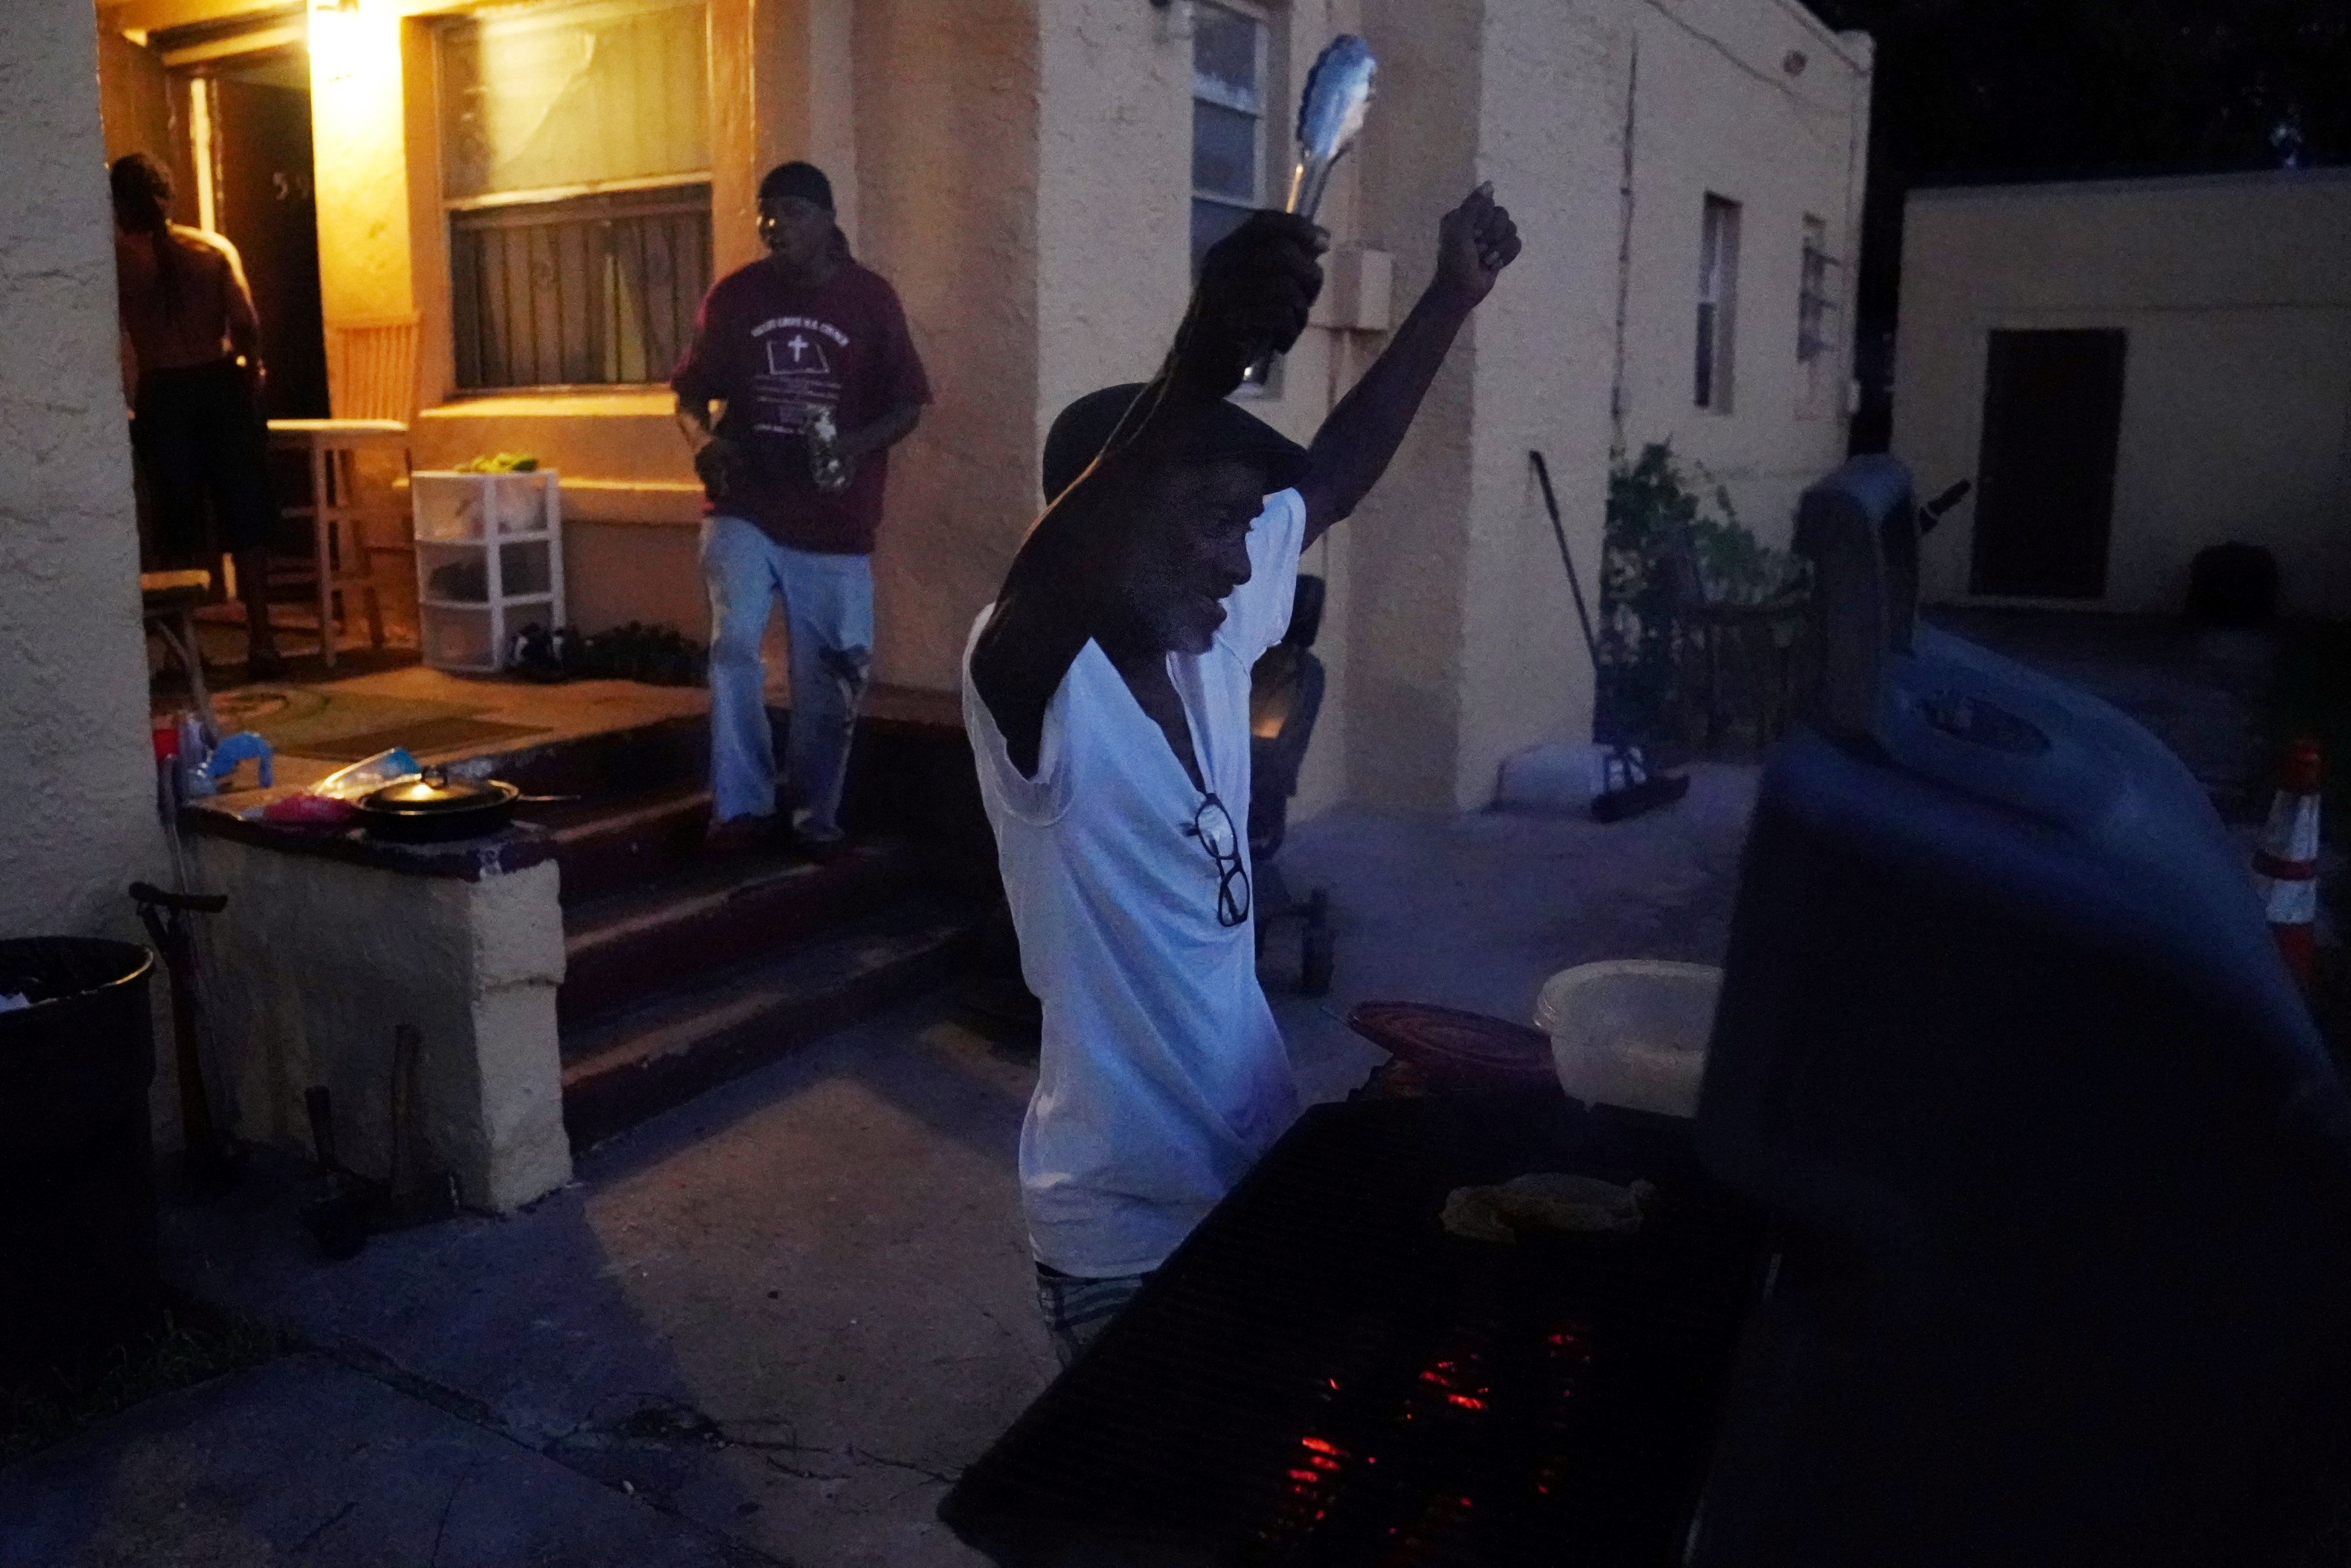 A man cheers just as power is restored to his house after Hurricane Irma struck the Little Haiti neighborhood of Miami, Florida, U.S., September 12, 2017. REUTERS/Carlo Allegri